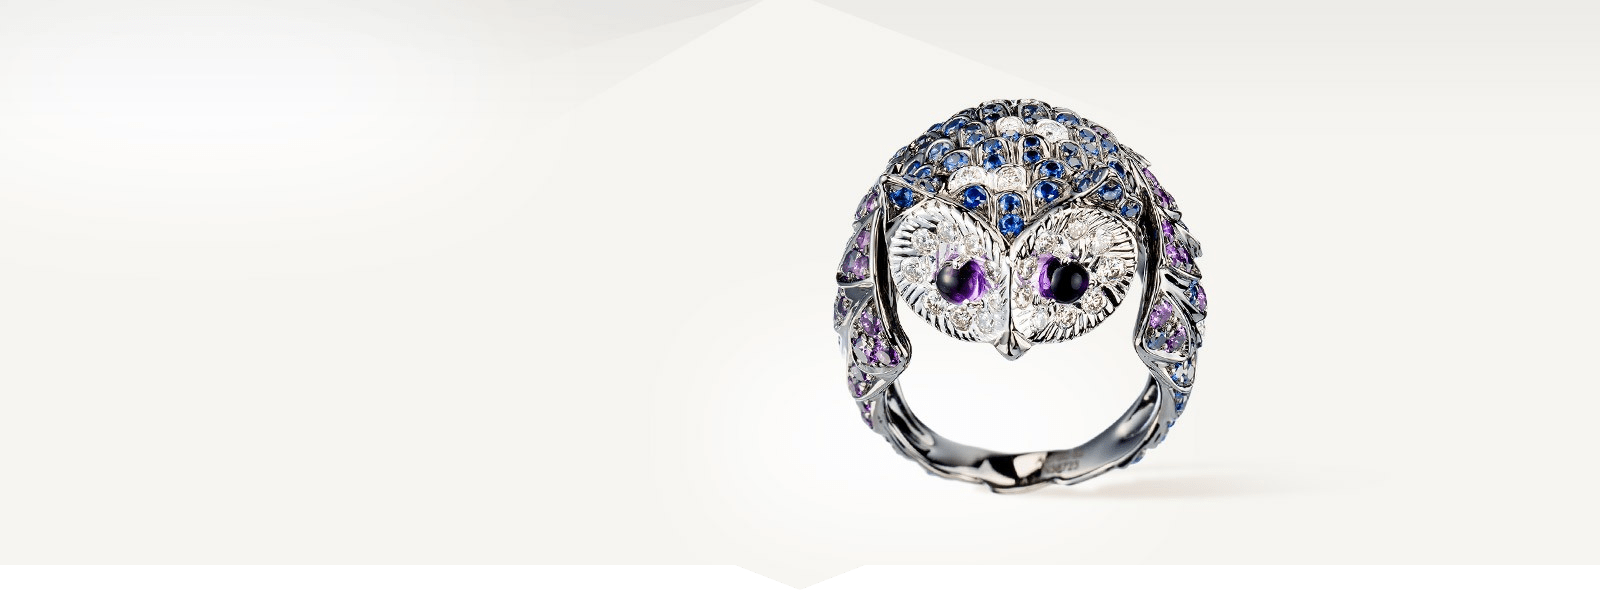 Noctua, the Owl ring by Boucheron. Ring set with pavé amethysts, cabochon amethysts, sapphires and diamonds, in white gold.